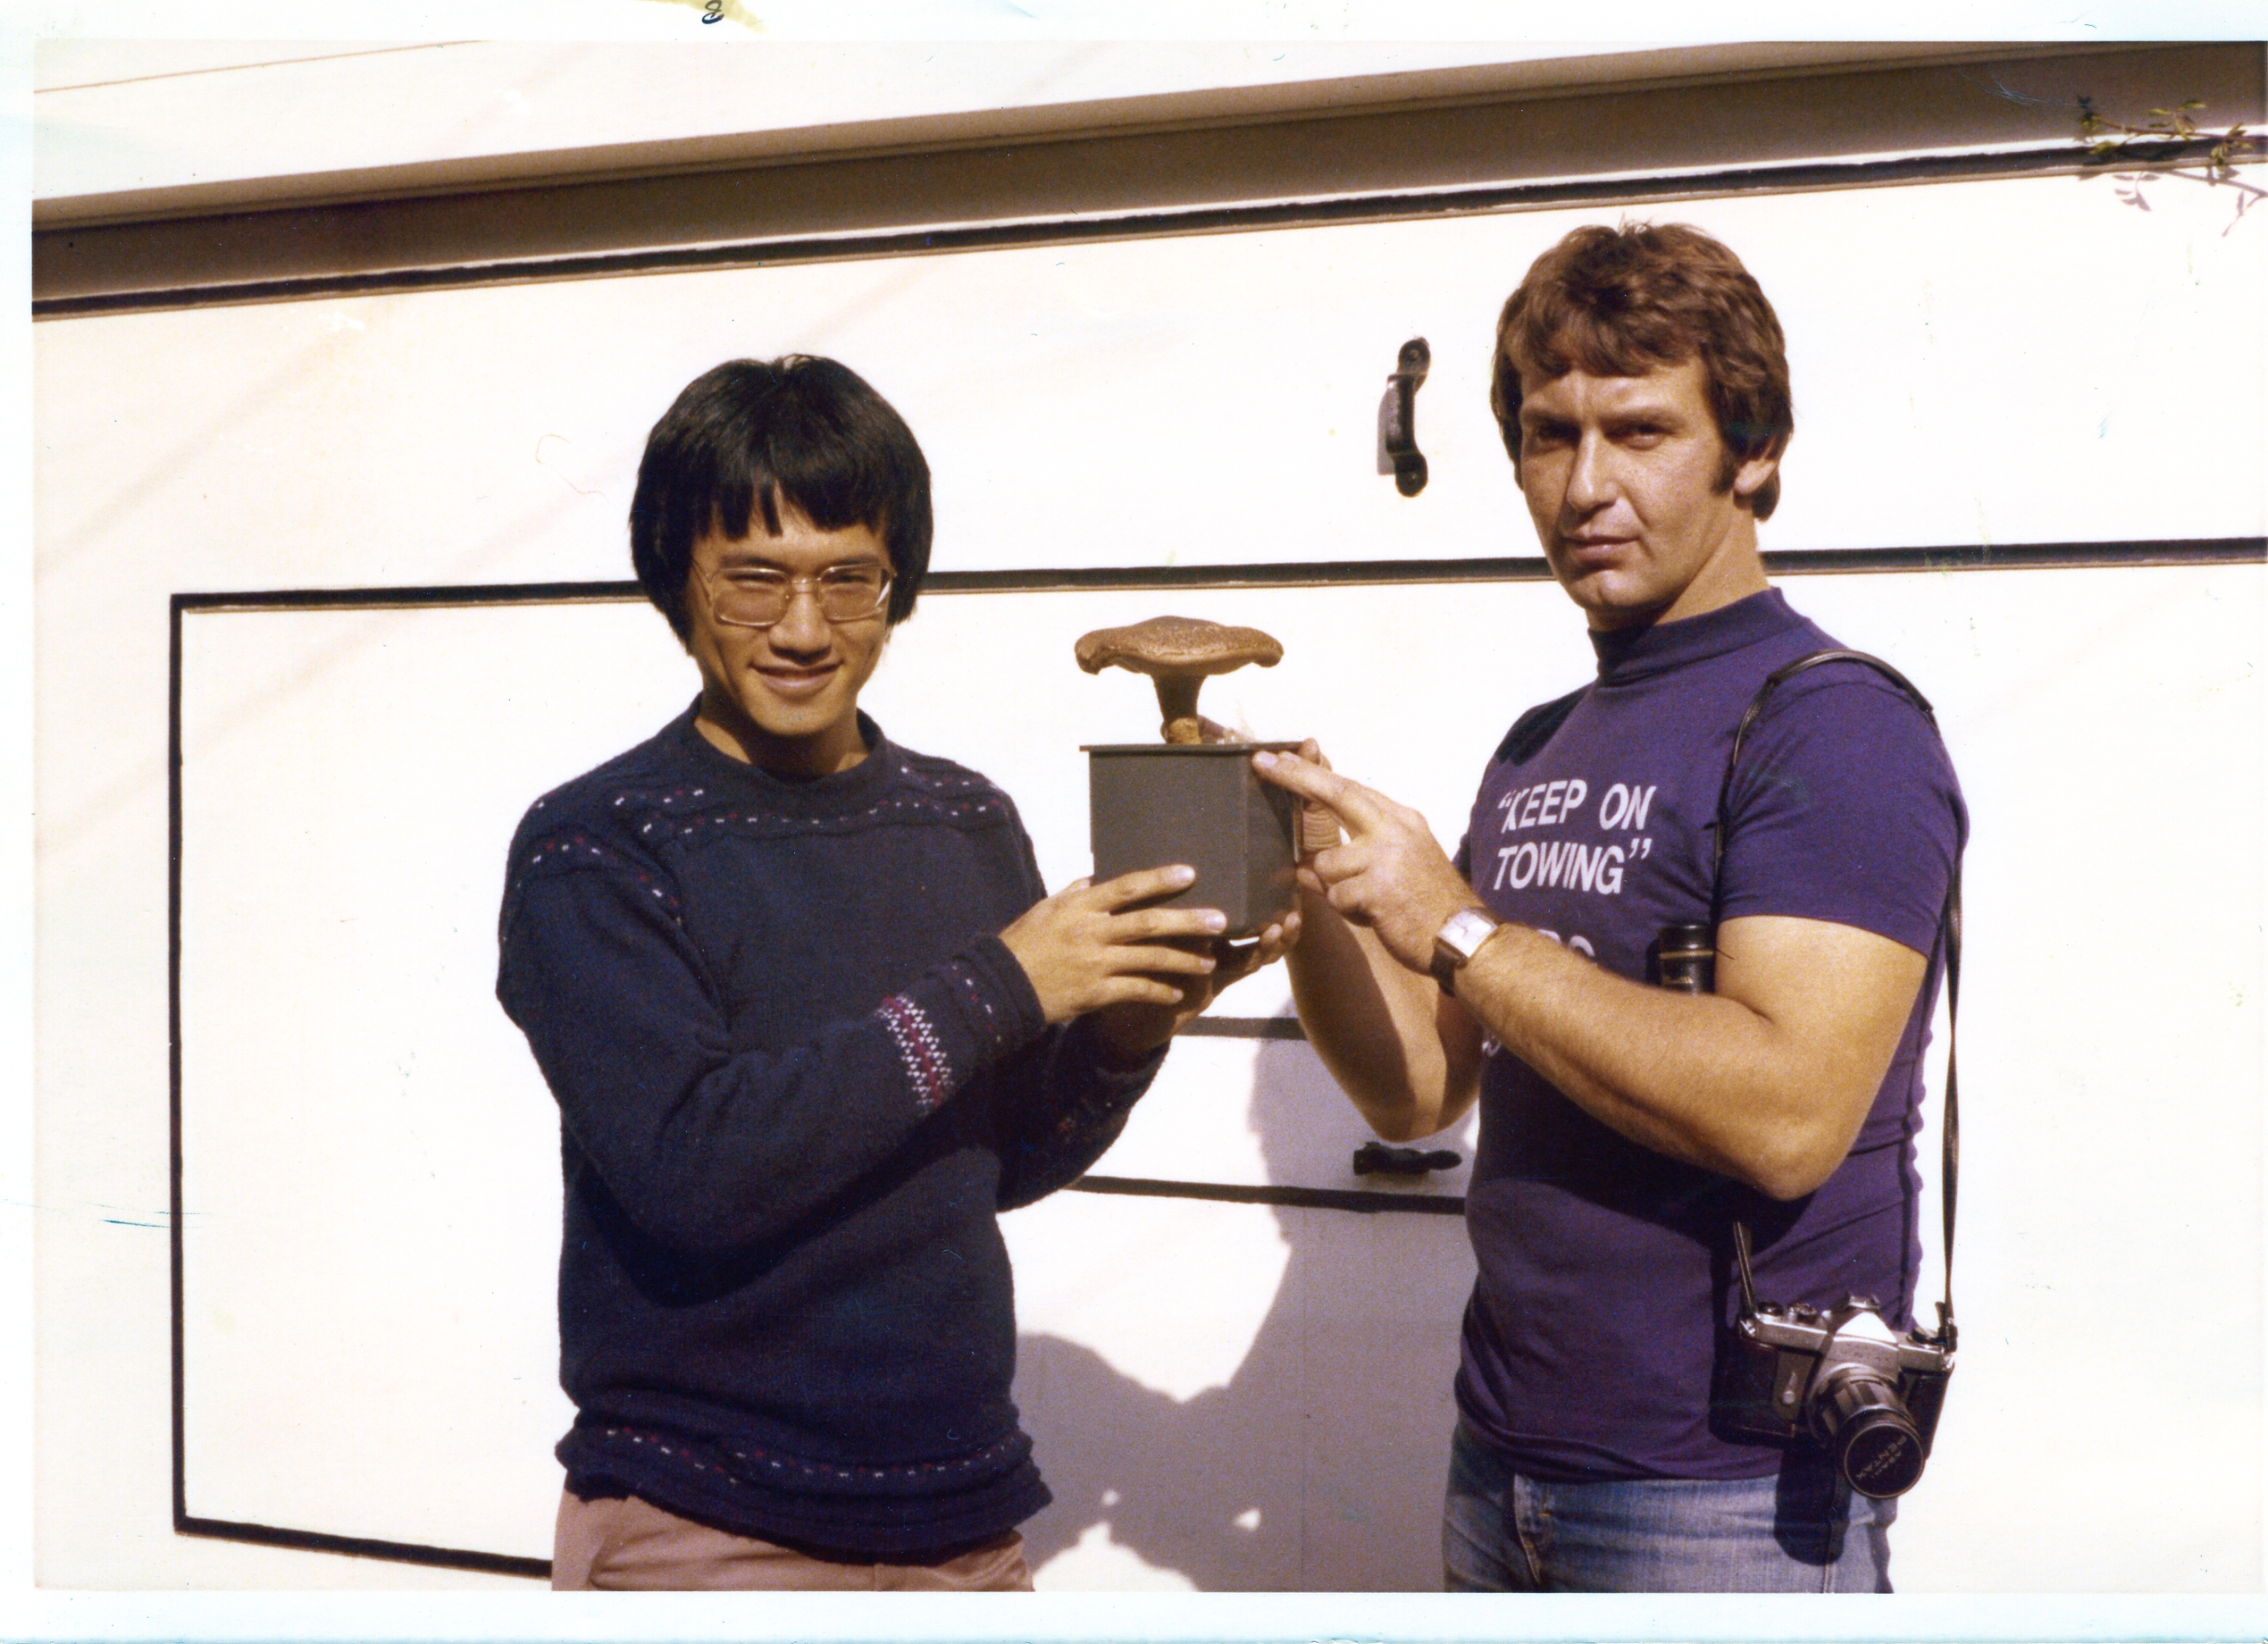 Keep on Towing: Co-founders David Law and Malcolm Clark with their first successfully cultivated shiitake mushroom in 1977